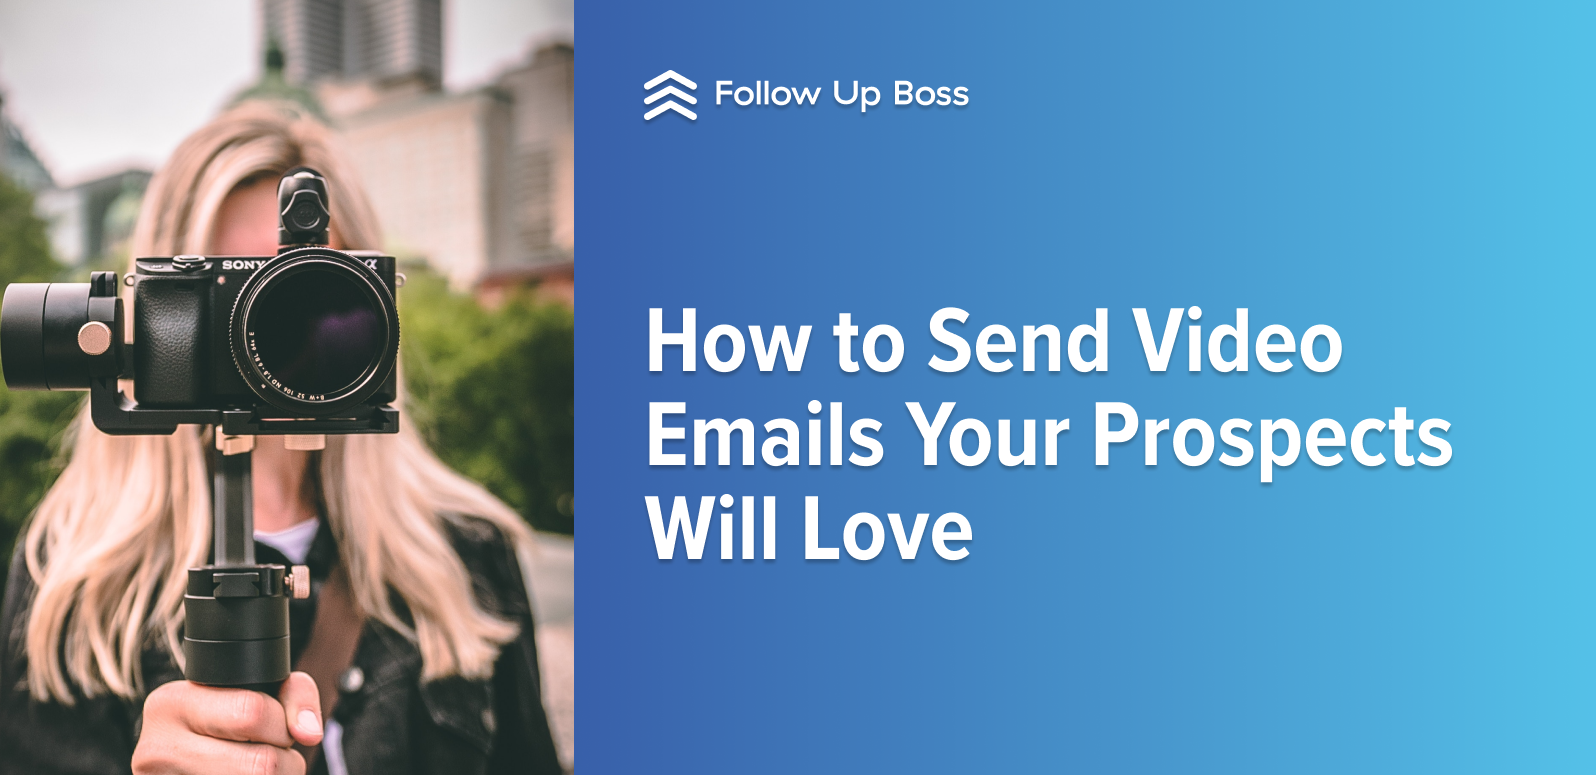 How to Send Video Emails Your Real Estate Prospects Will Love